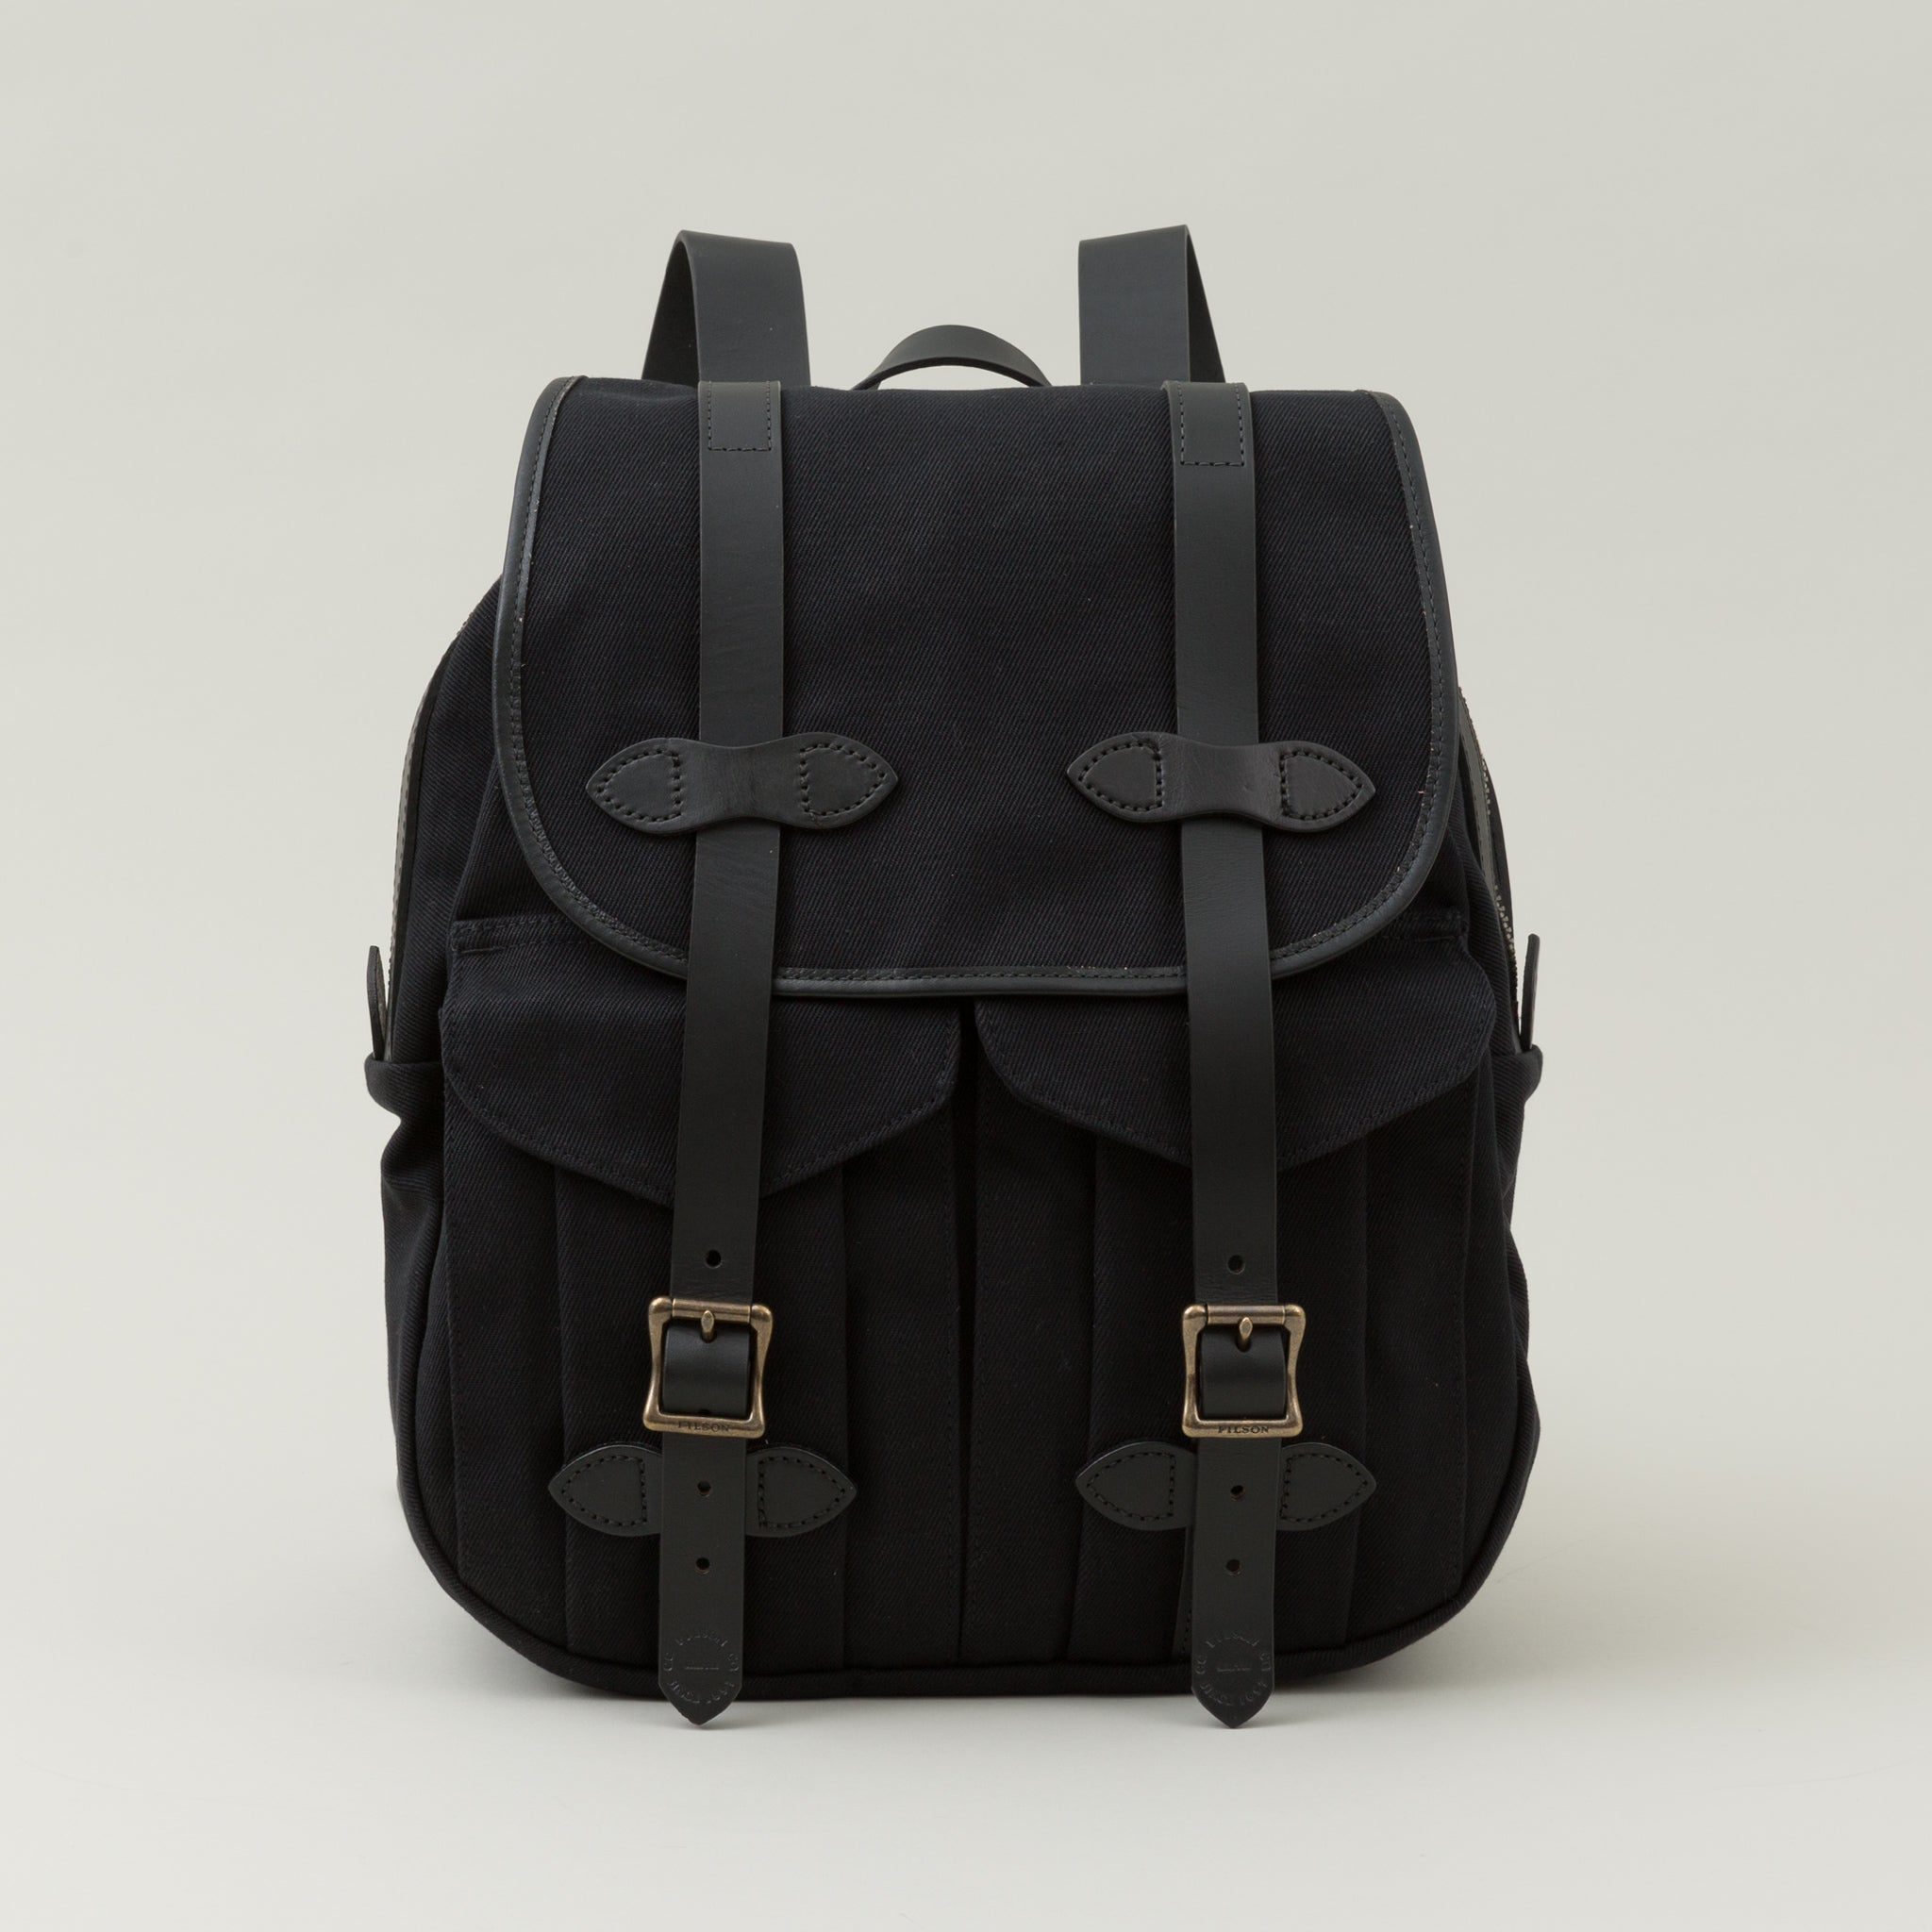 Rugged Twill Rucksack, Black - The Stronghold 91fc99b5e3